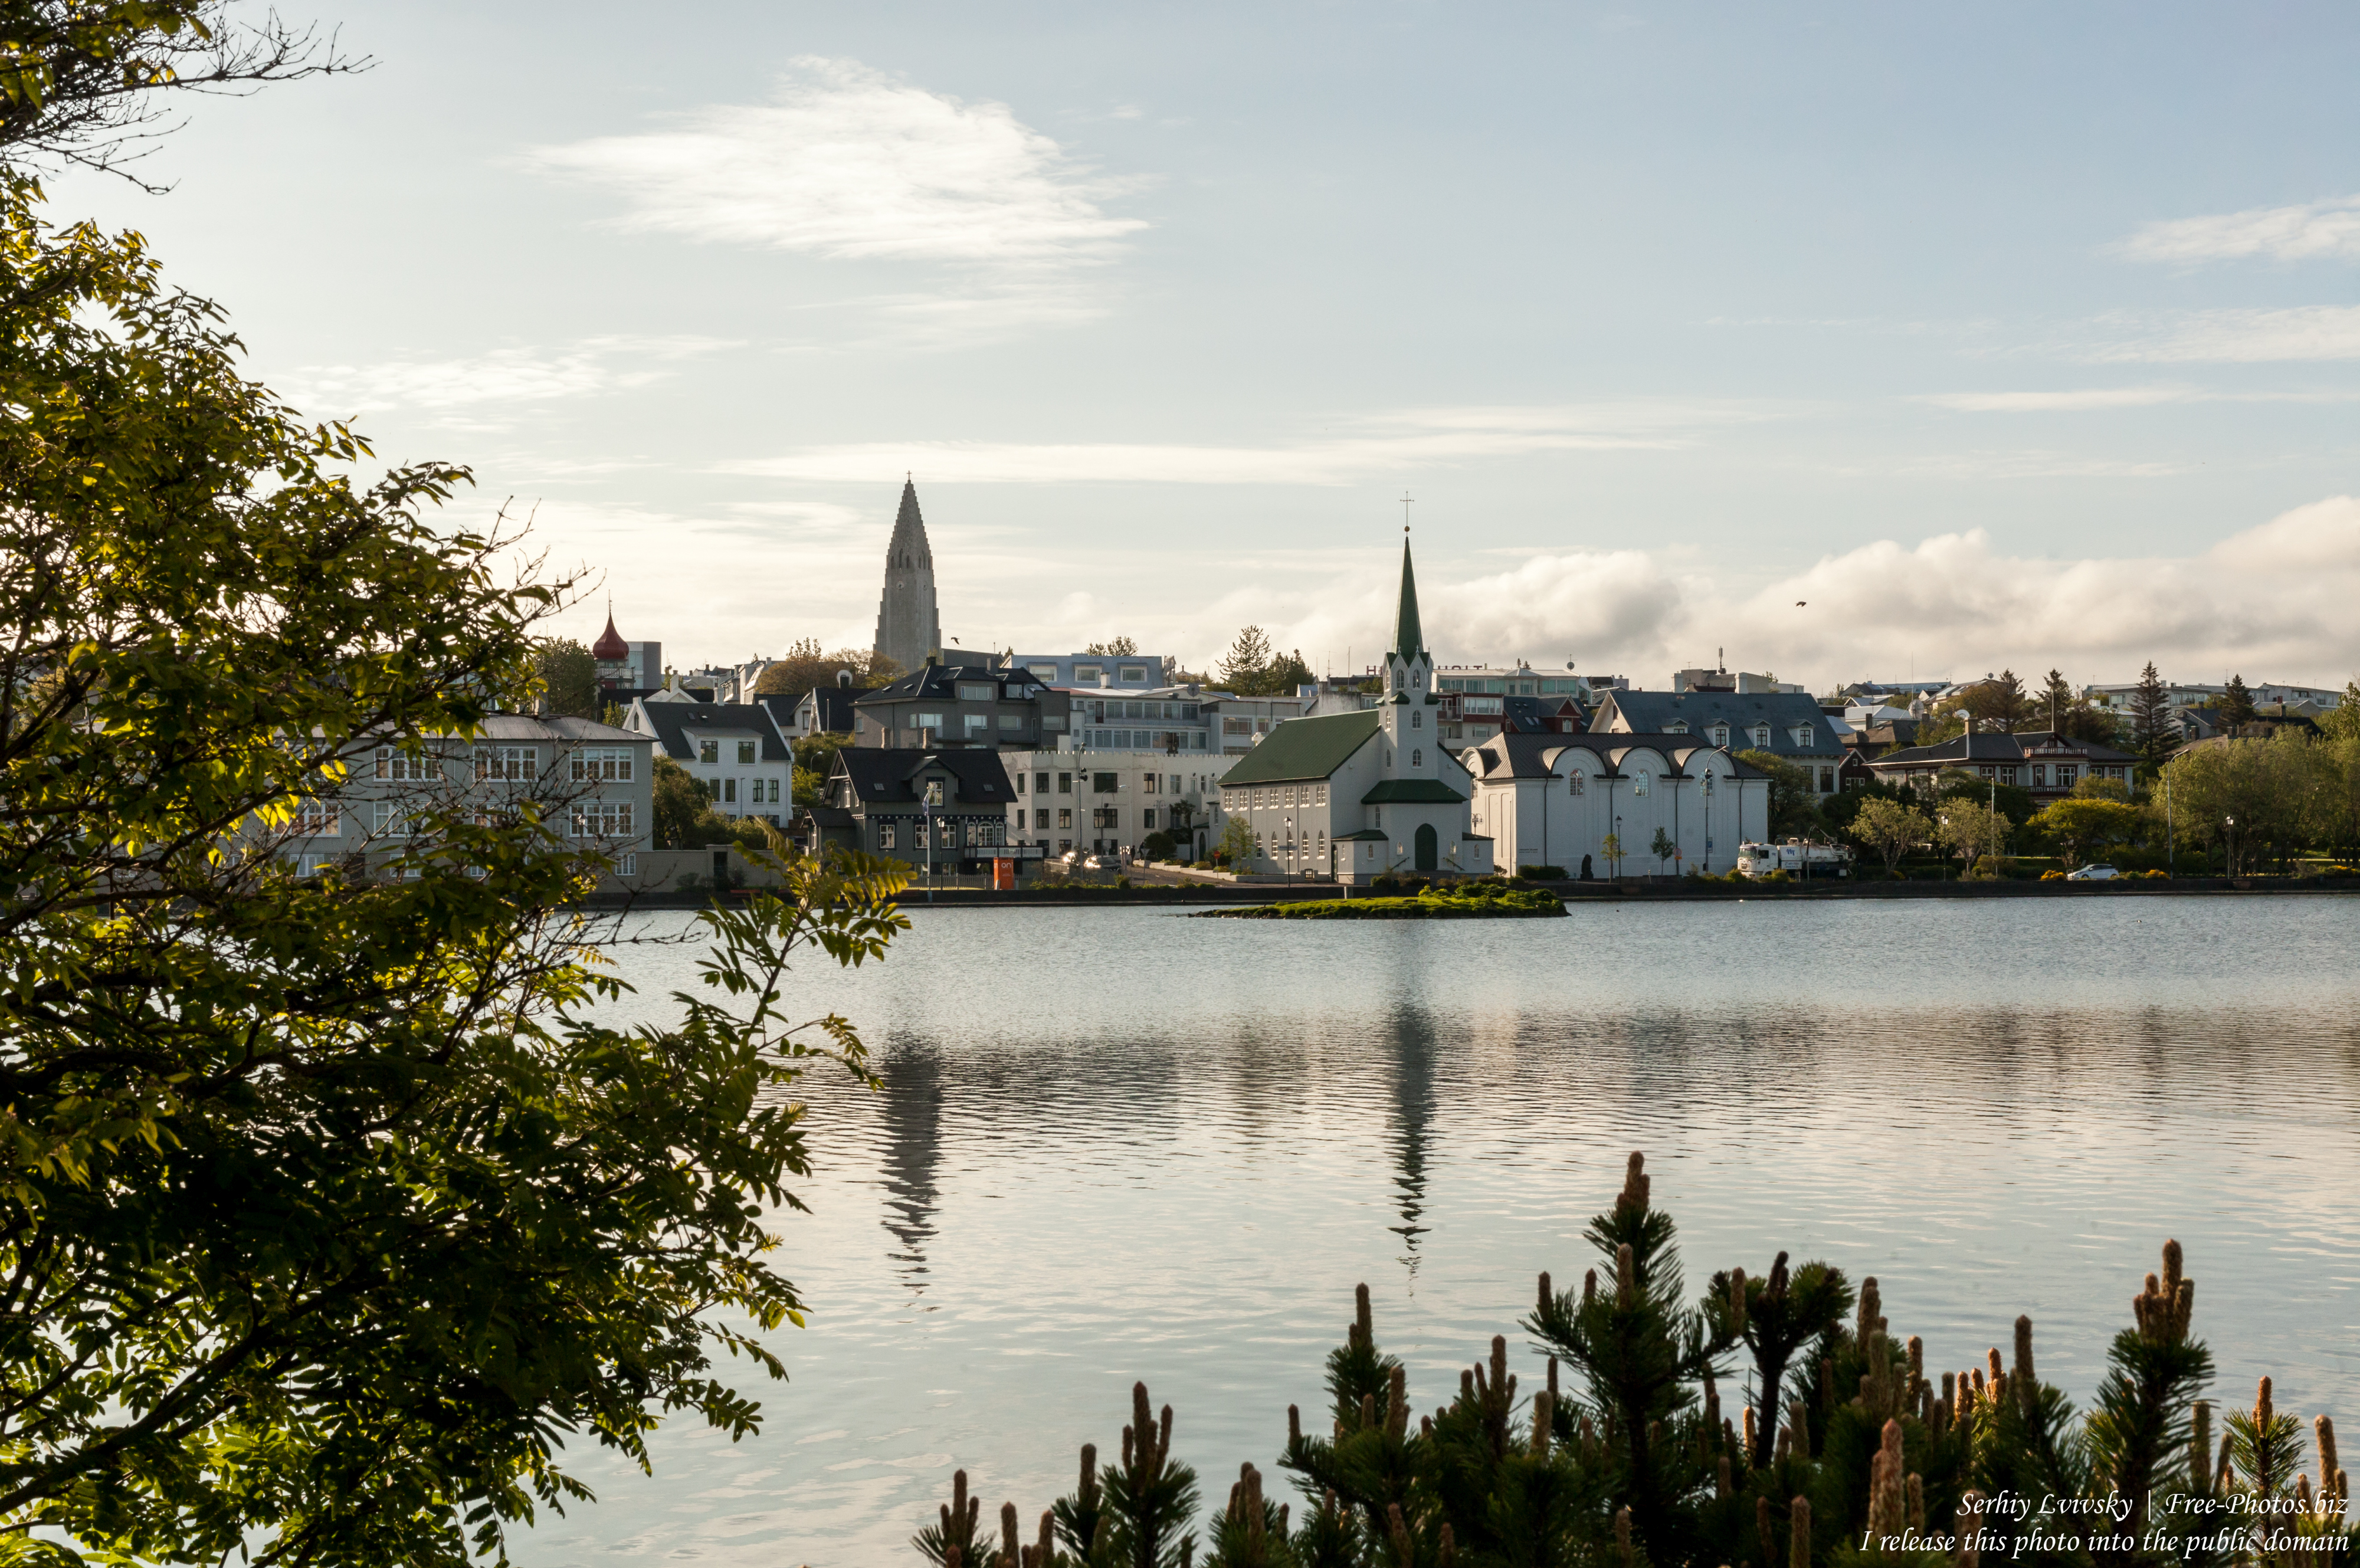 reykjavik_iceland_photographed_in_may_2019_by_serhiy_lvivsky_71